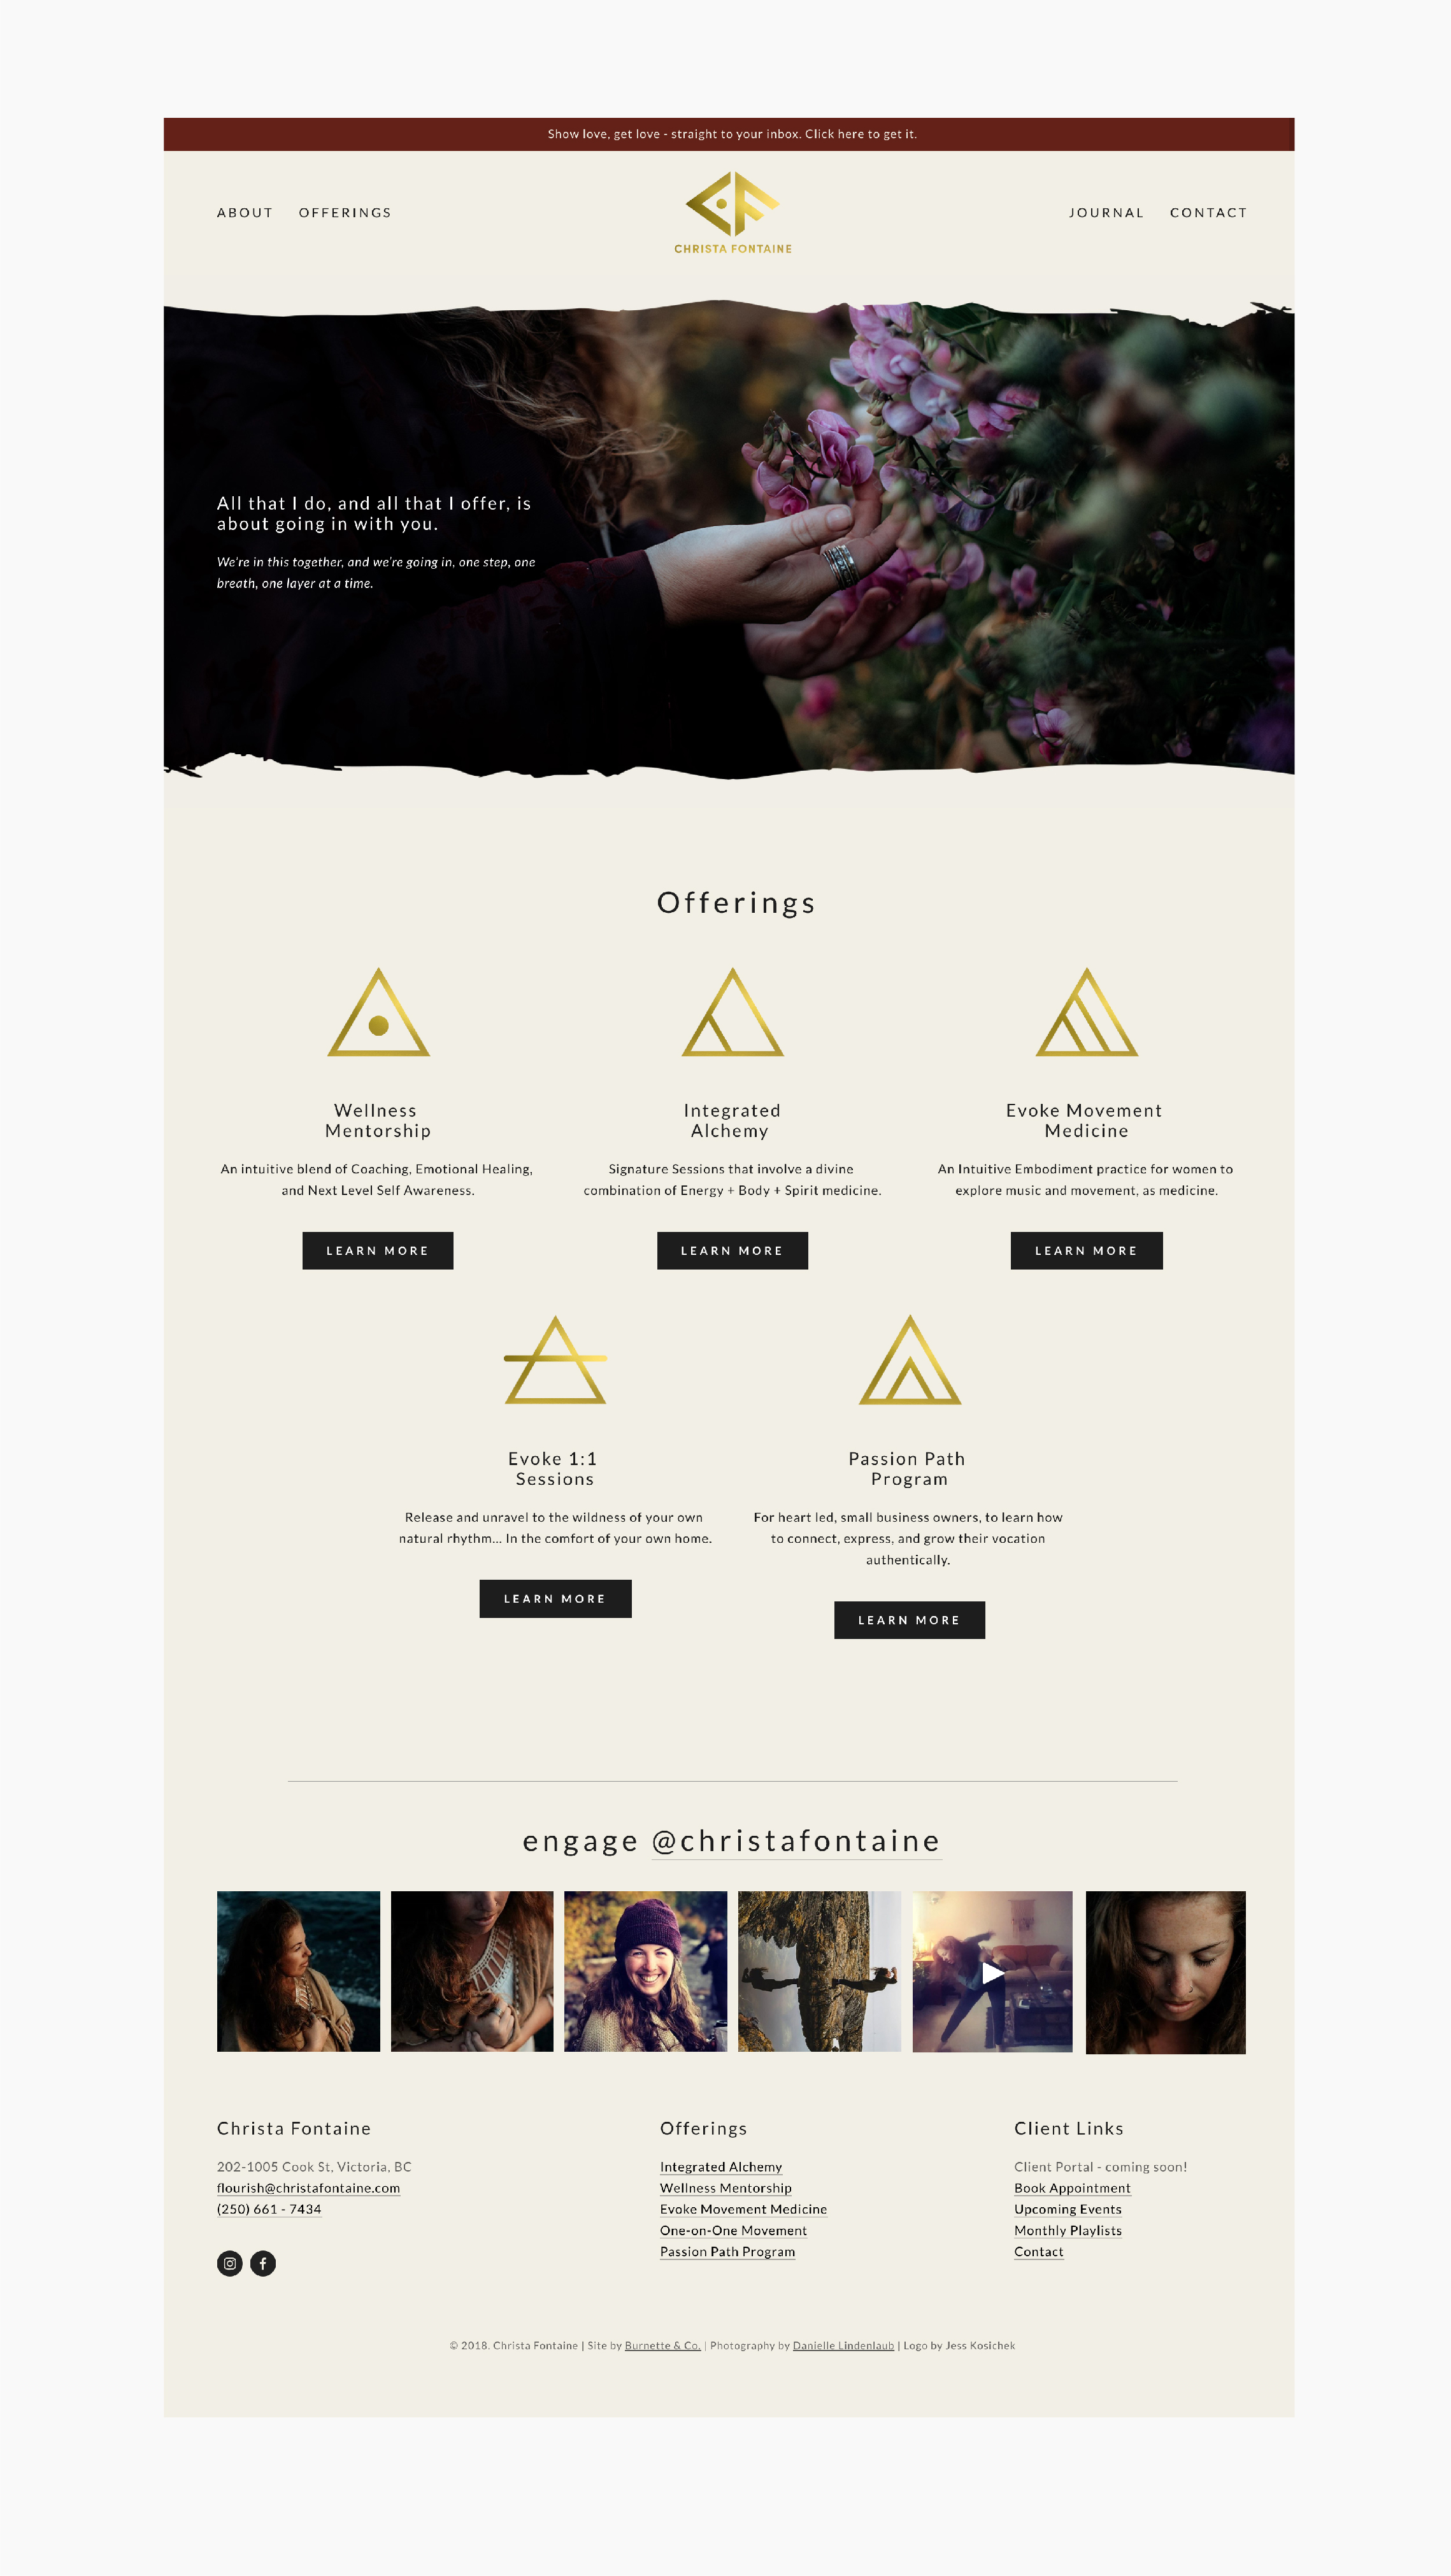 burnette+co_our-portfolio_christa-fontaine-full-offerings-page_1.jpg